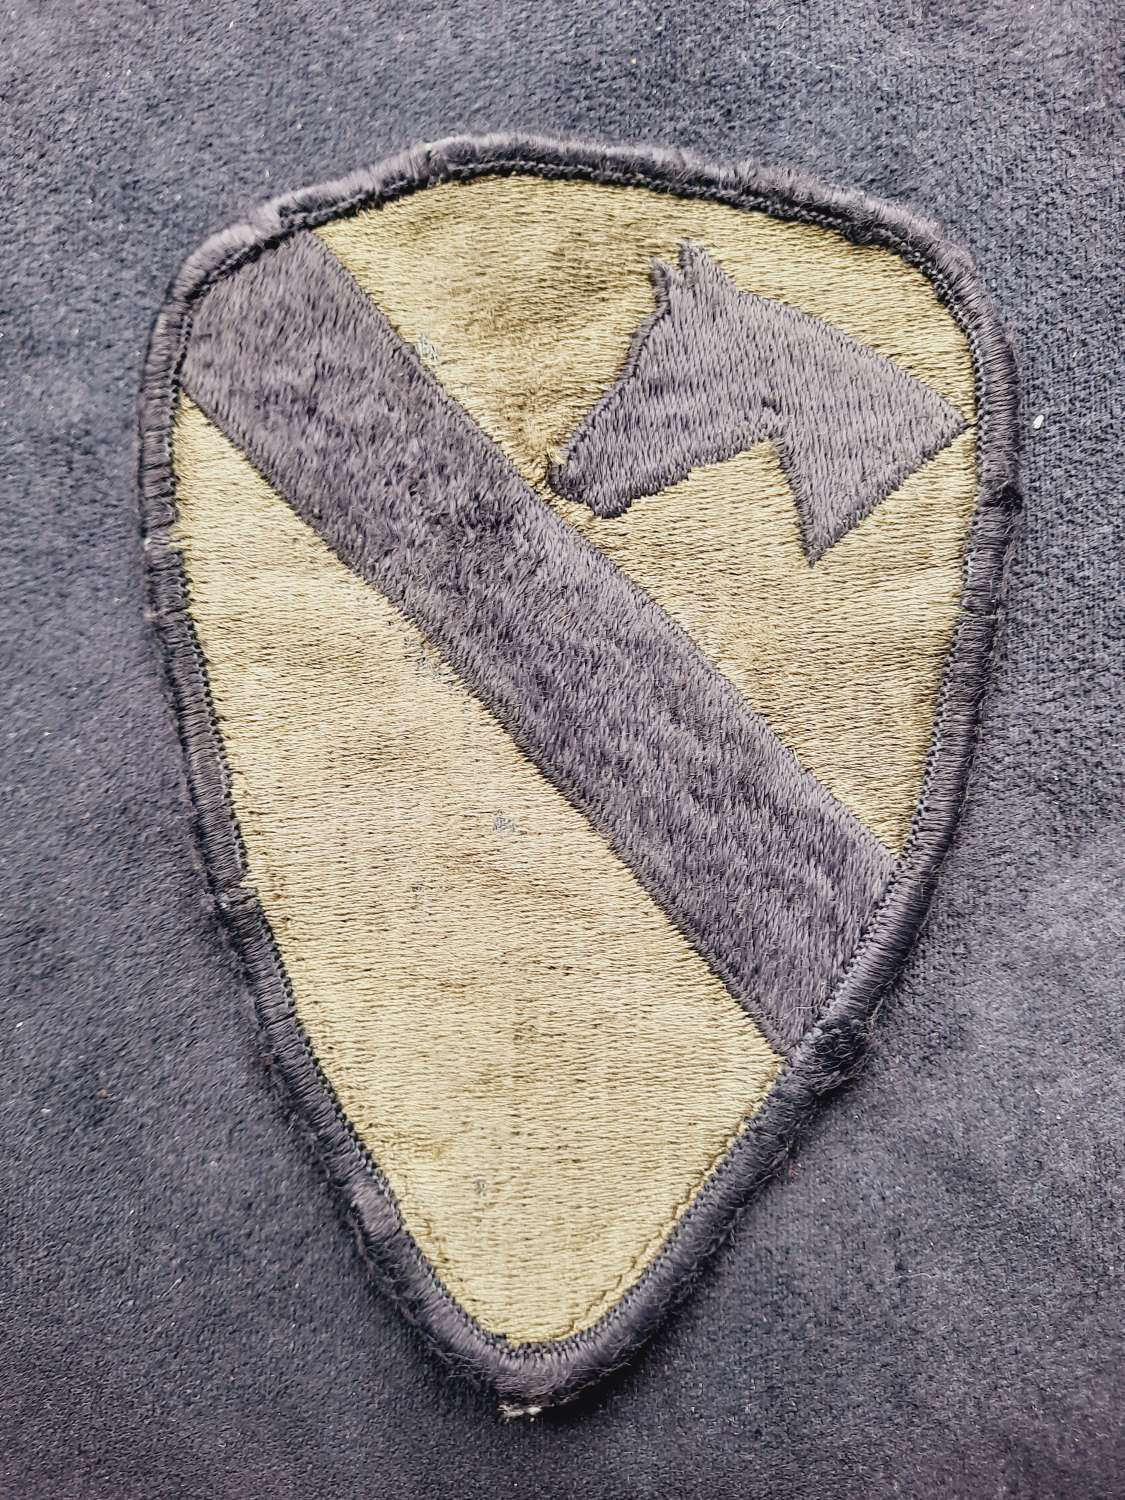 US 1st Cavalry Division Patch